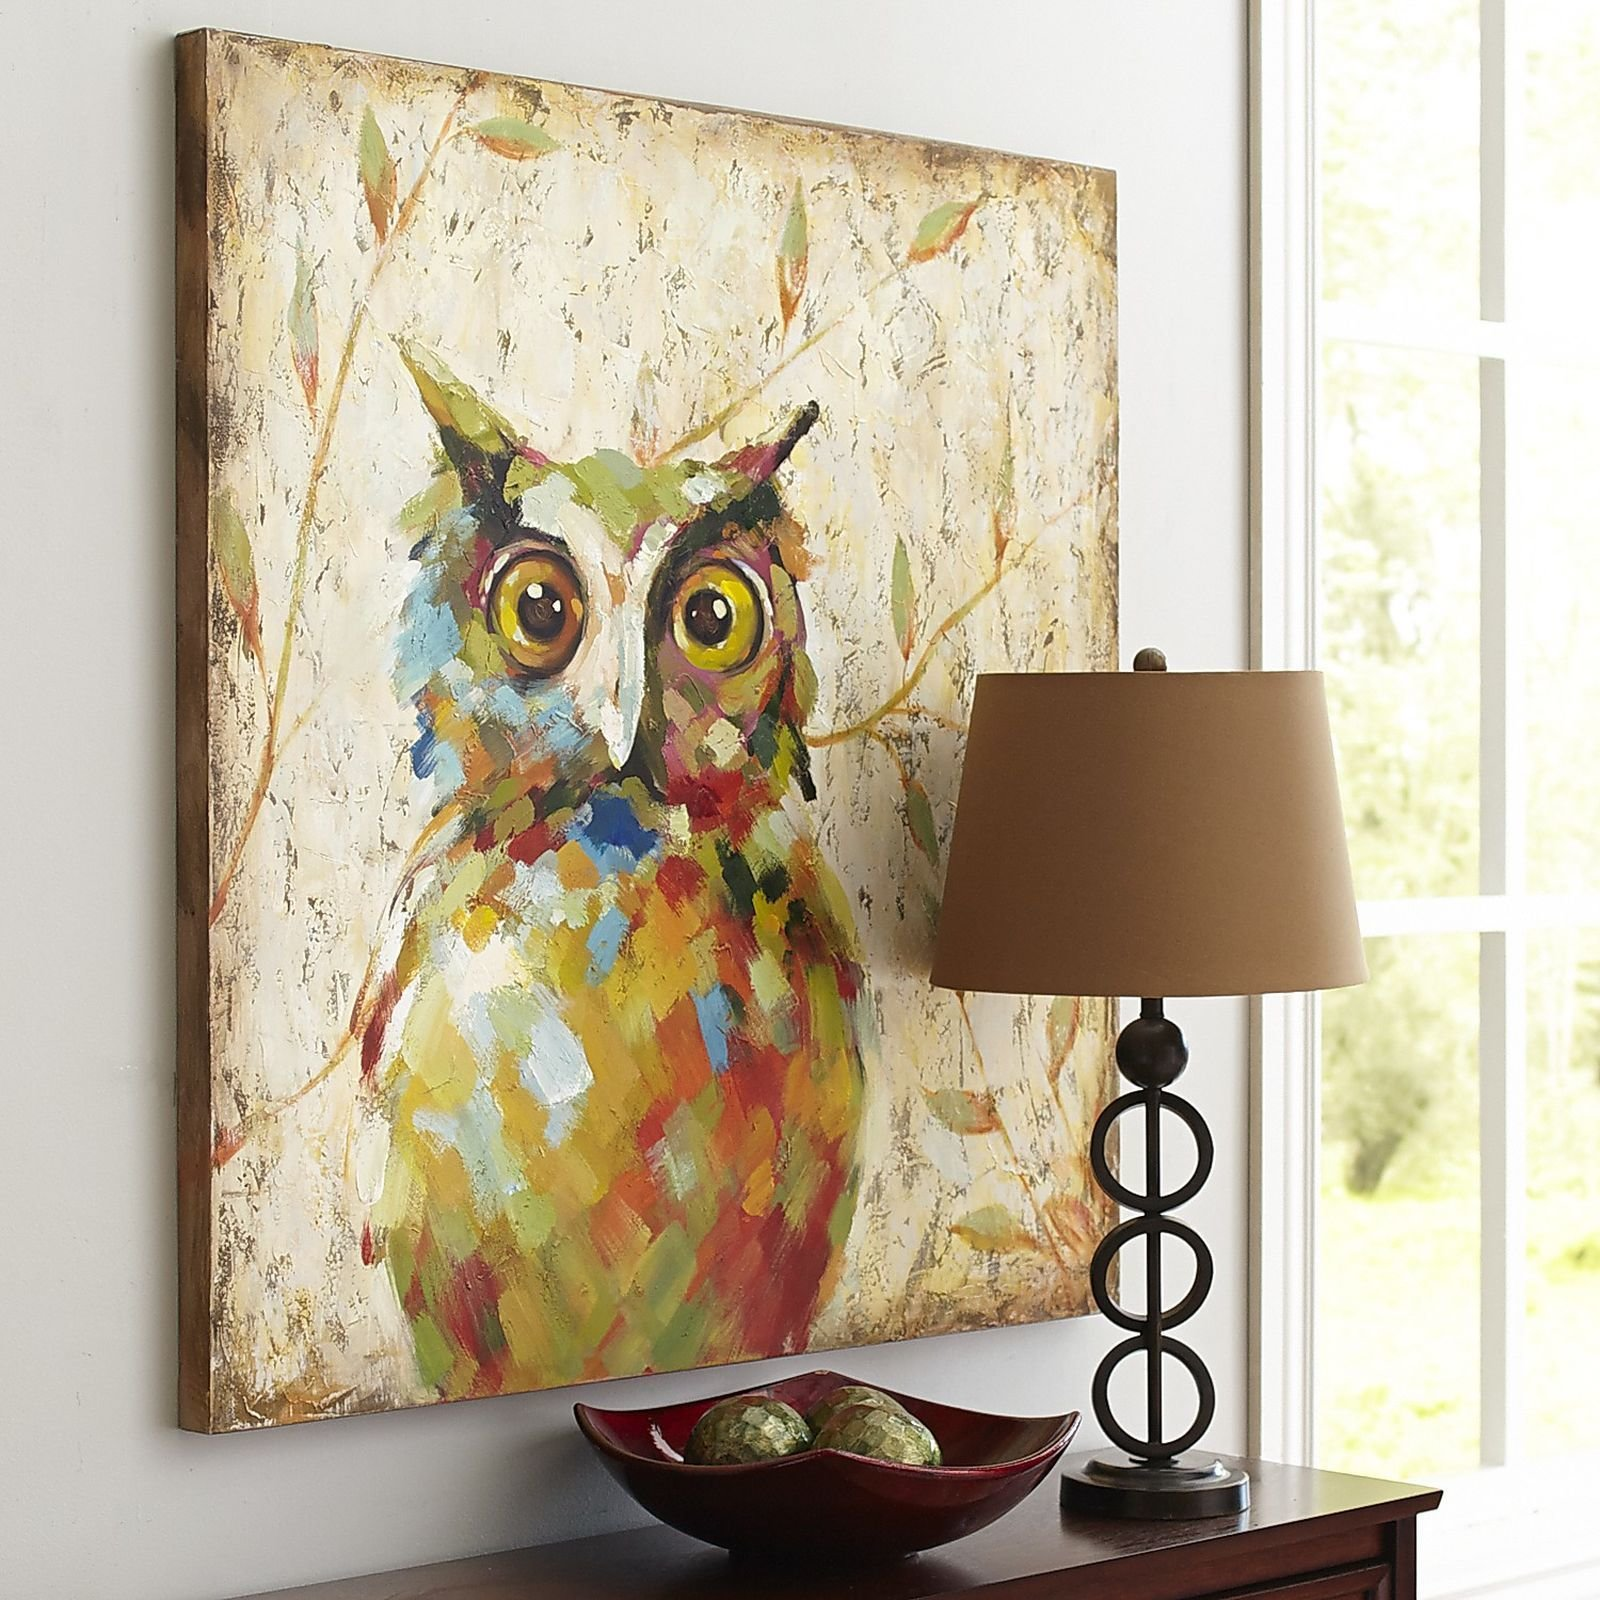 Best Quirky Owl Art Pier 1 Imports Home Decor Pinterest With Pictures